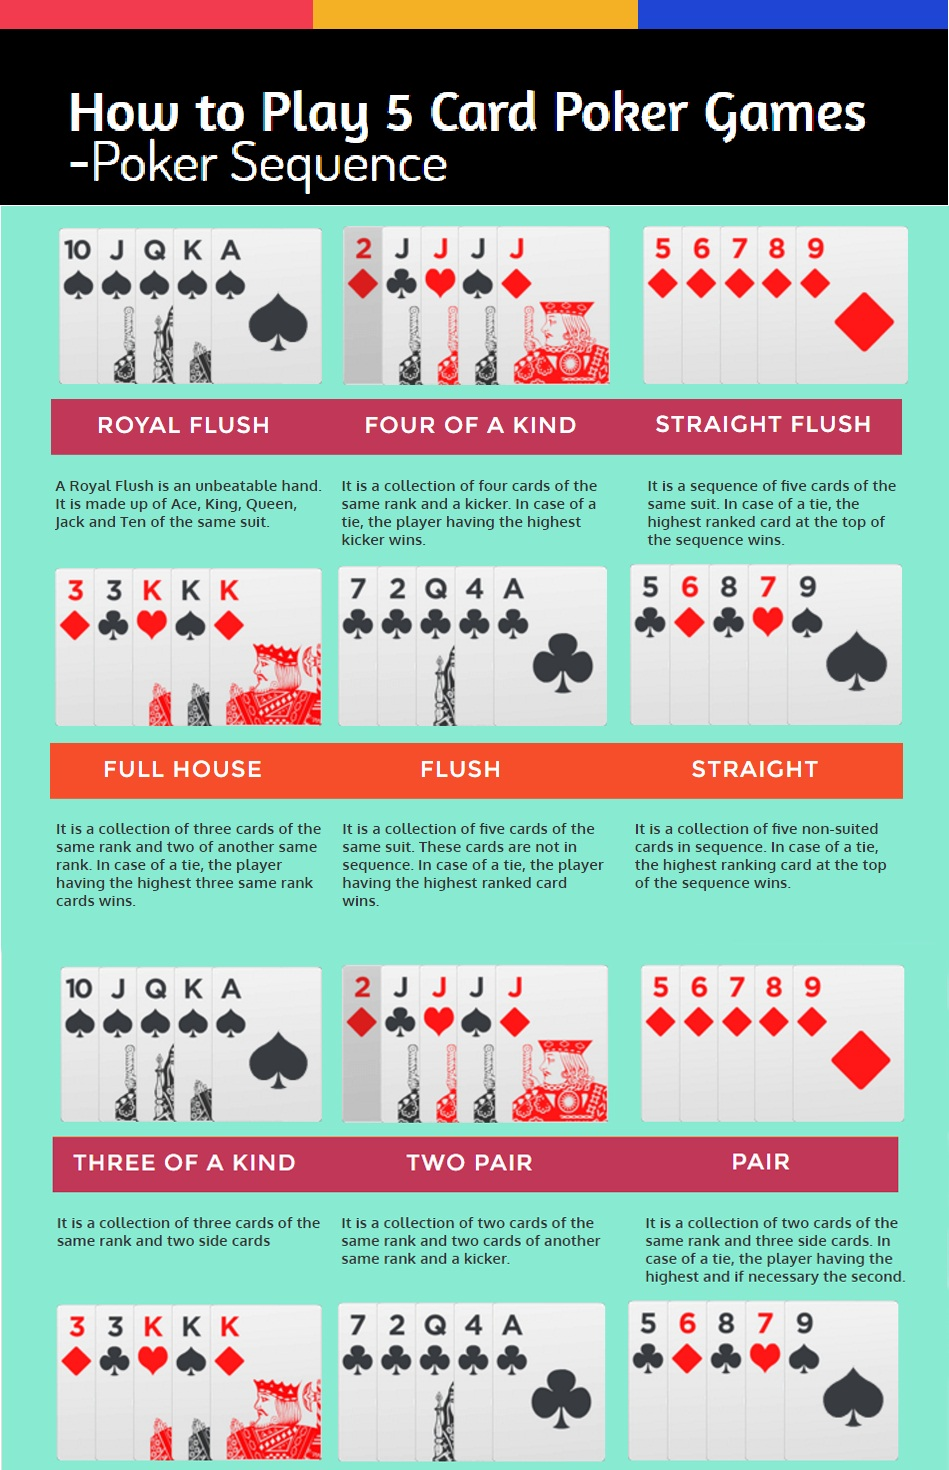 How-to-play-5-card-poker-games-infographic-plaza